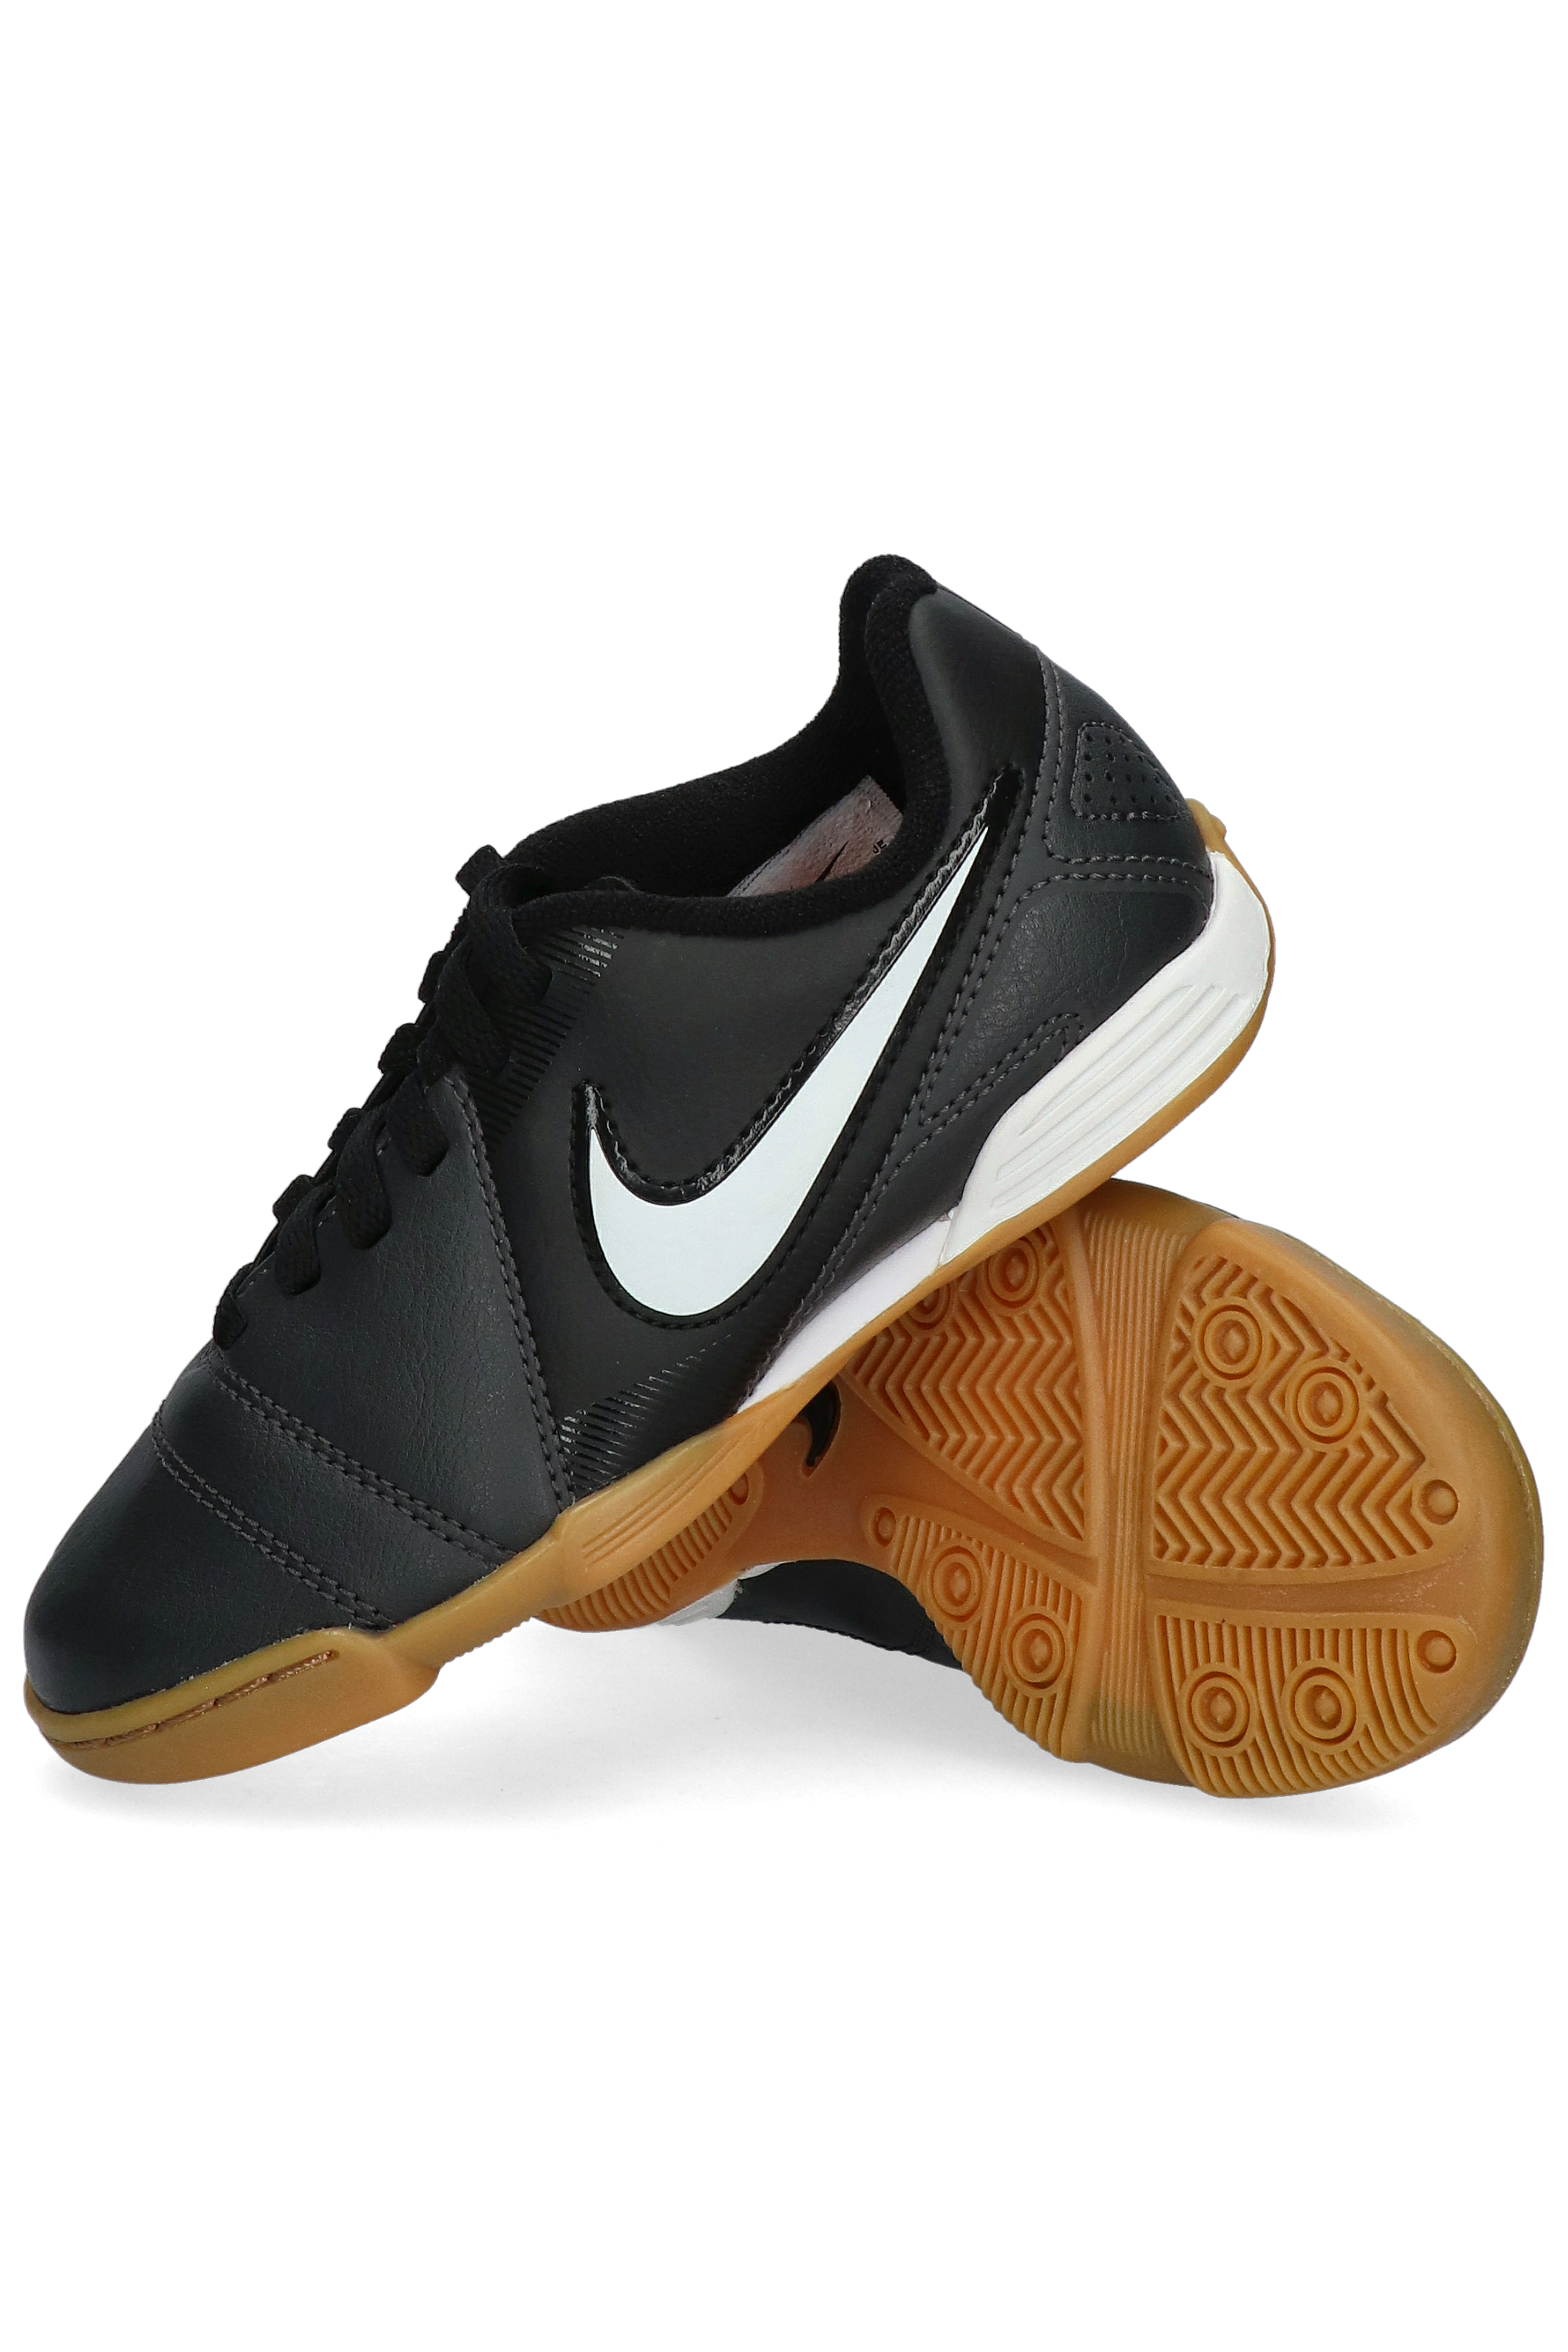 Salida hacia Sospechar Genuino  Nike CTR360 Enganche III IC Junior | R-GOL.com - Football boots & equipment